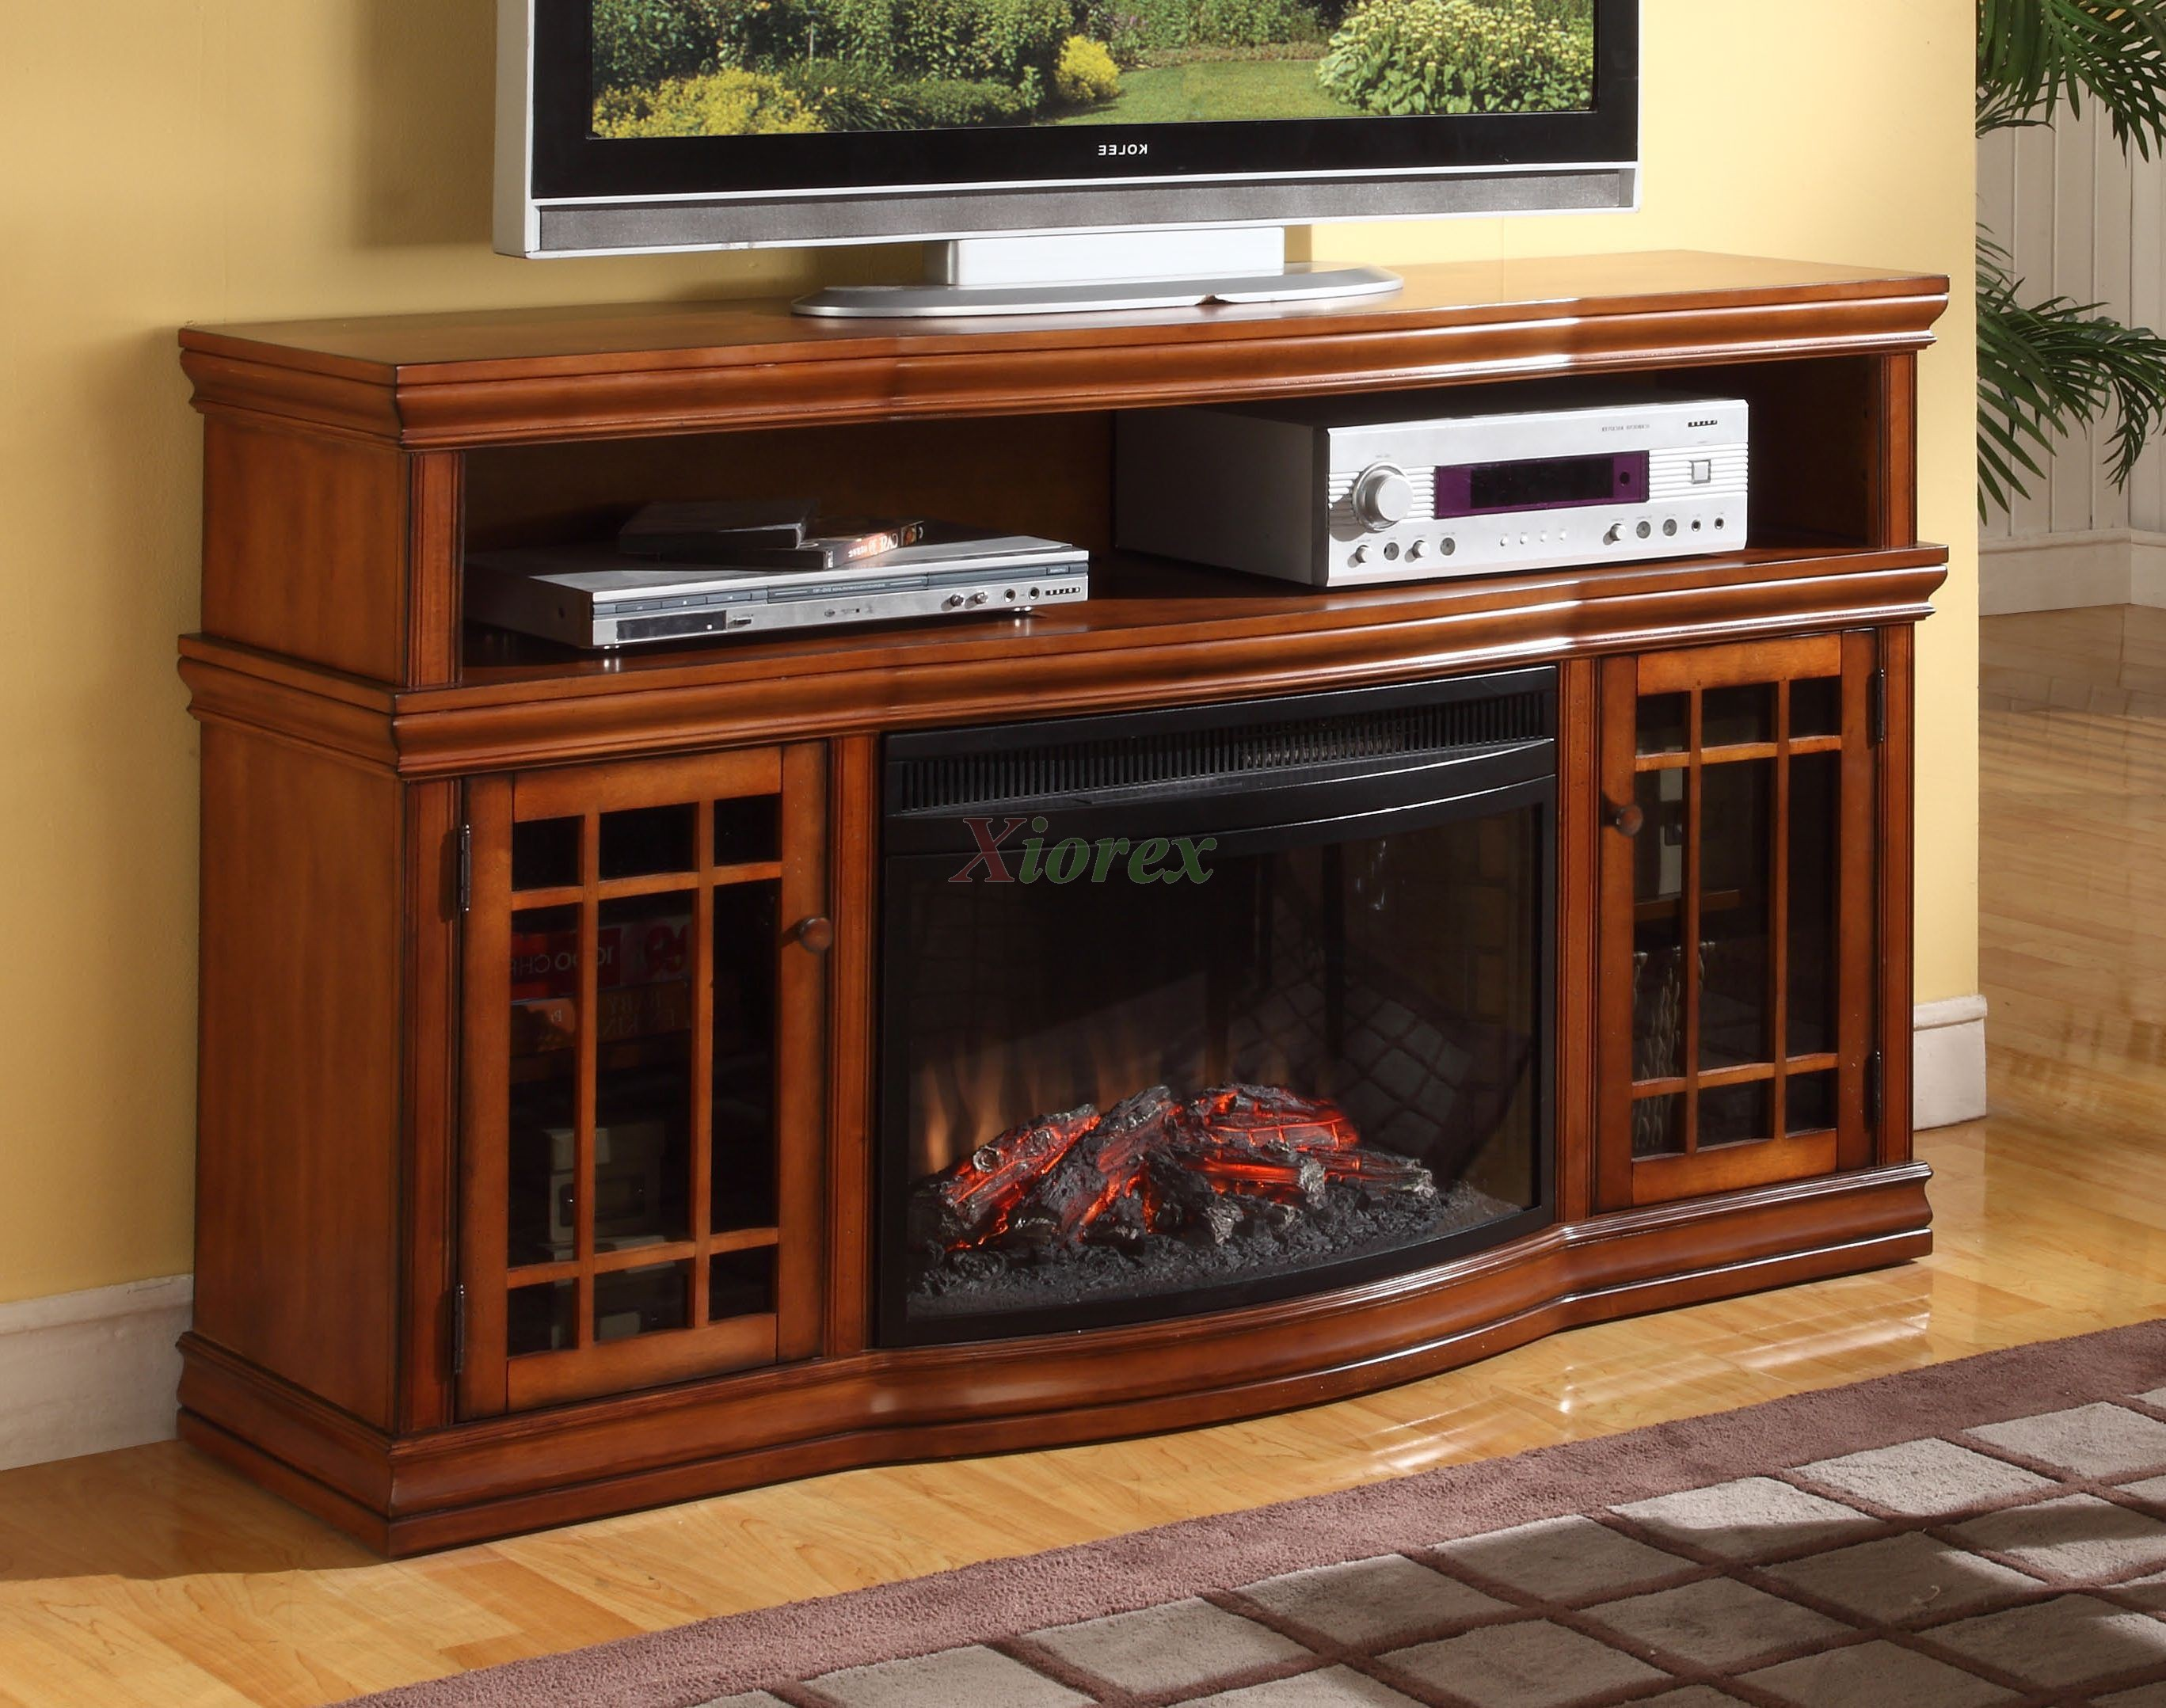 Dwyer Tv Fireplace By Greenway In Burnished Pecan Espresso Xiorex